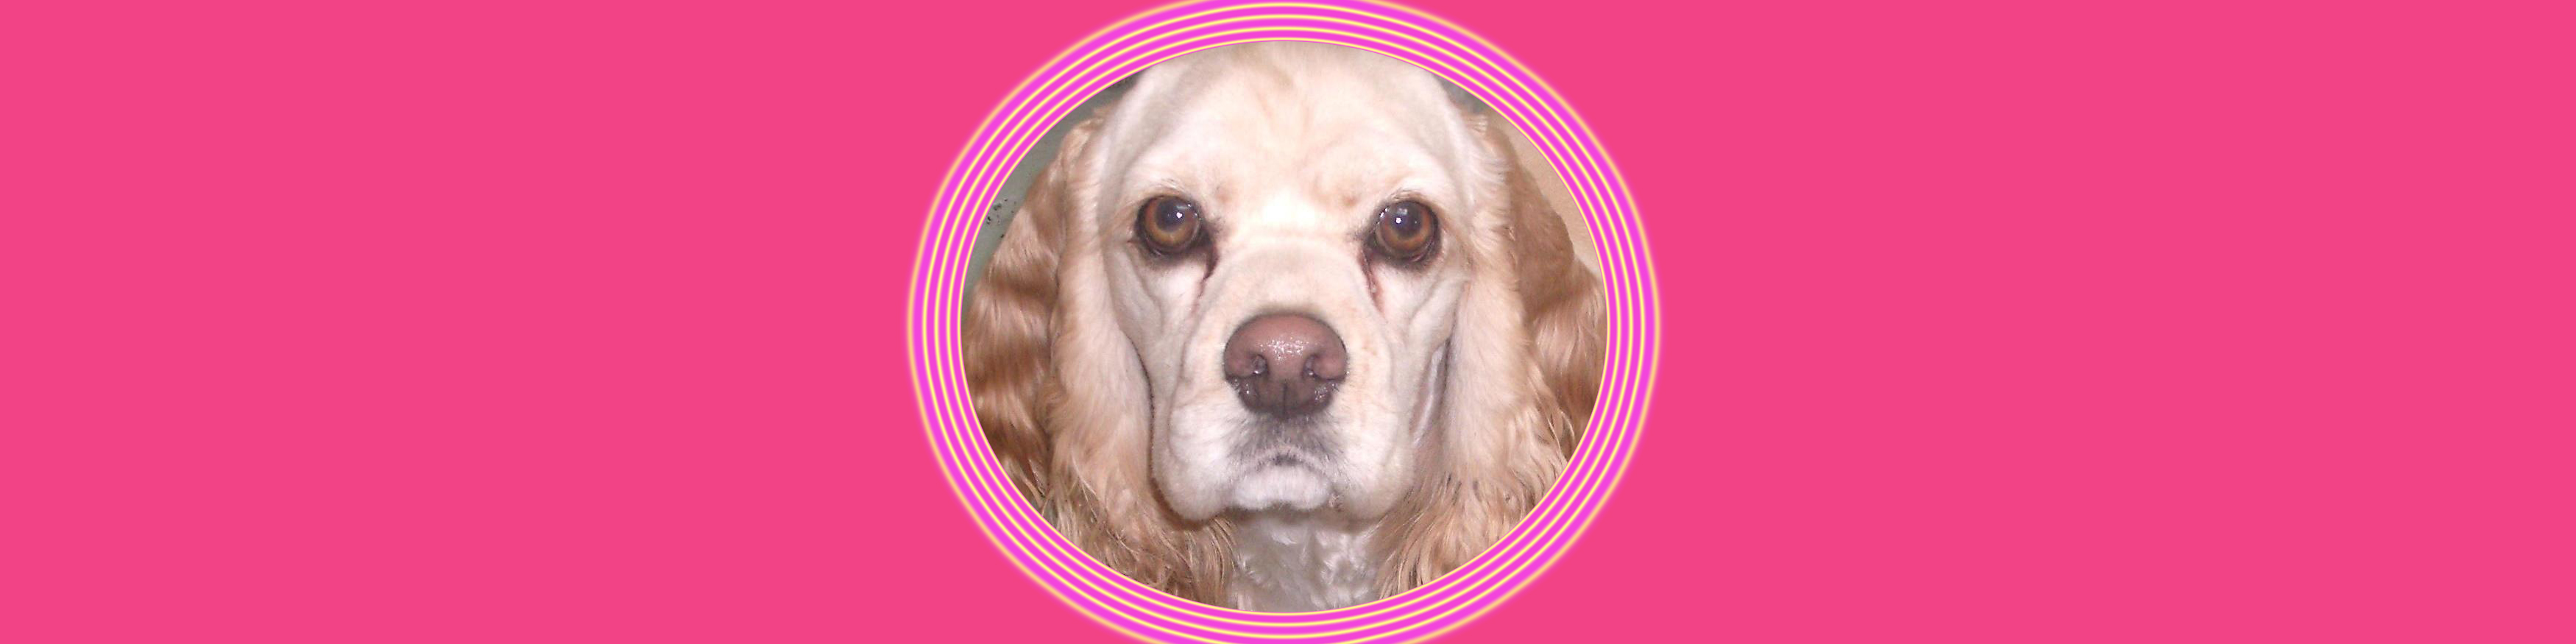 Legally Blonde Dog Breed